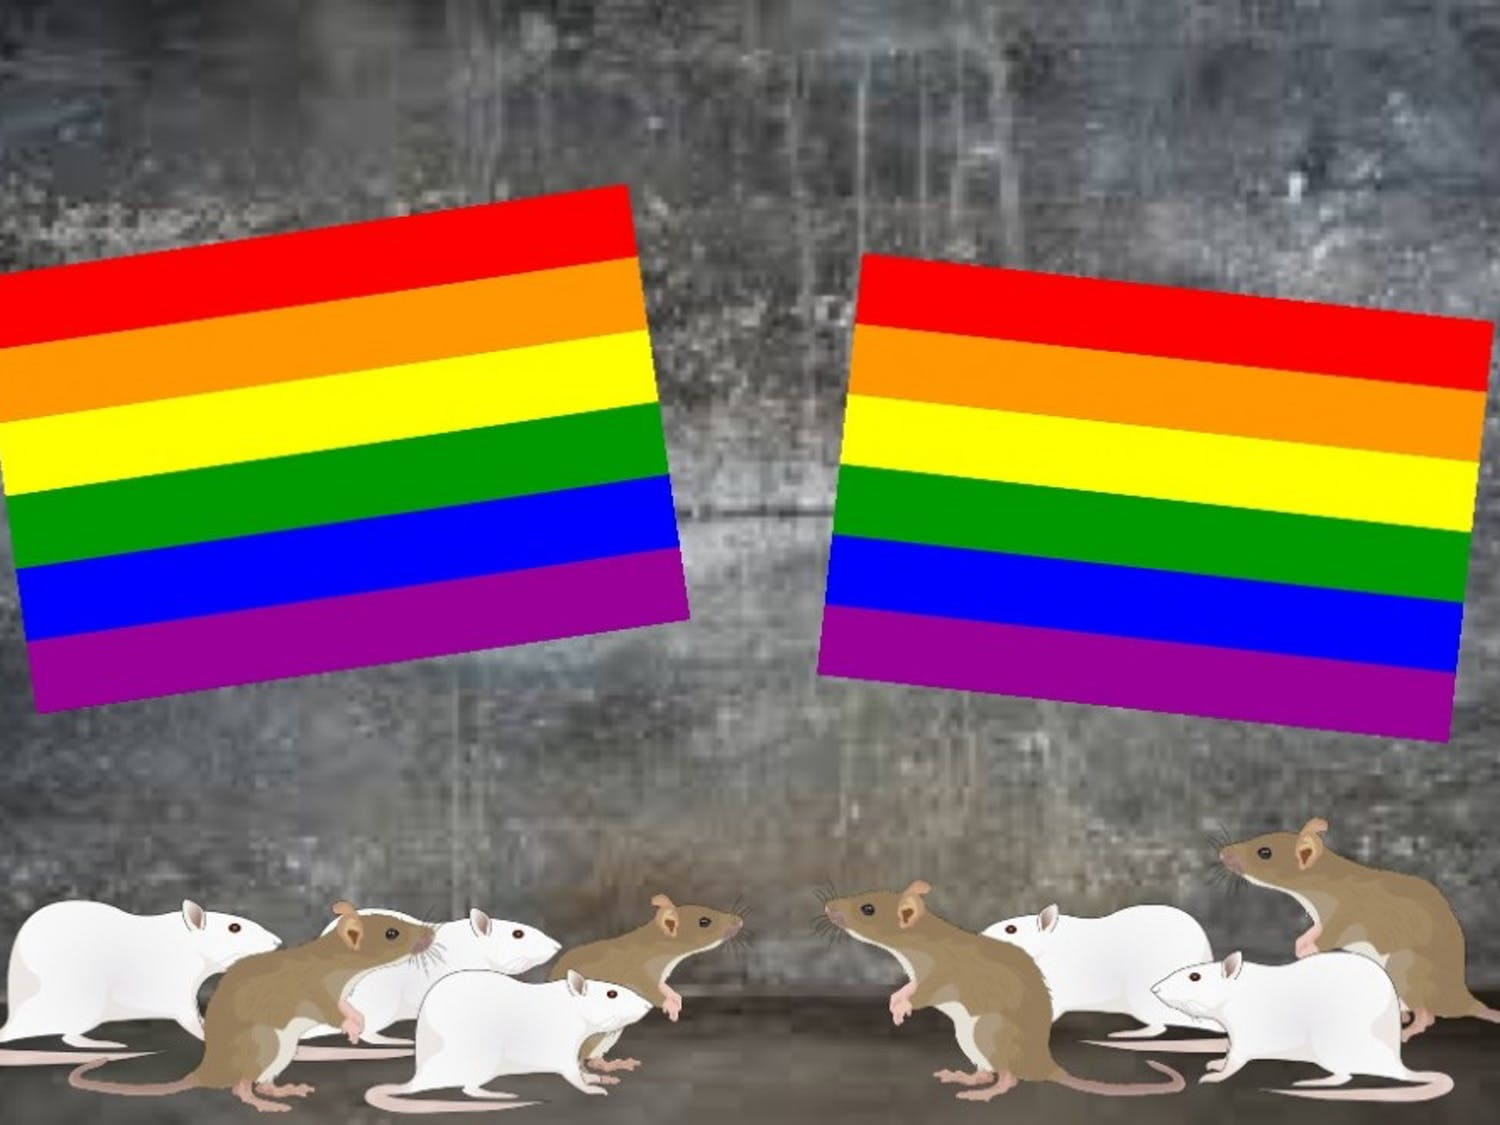 Mr. Ratburn seeks peaceful vengeance by planning his gay rat honeymoon in the walls of Alabama Public Television headquarters.